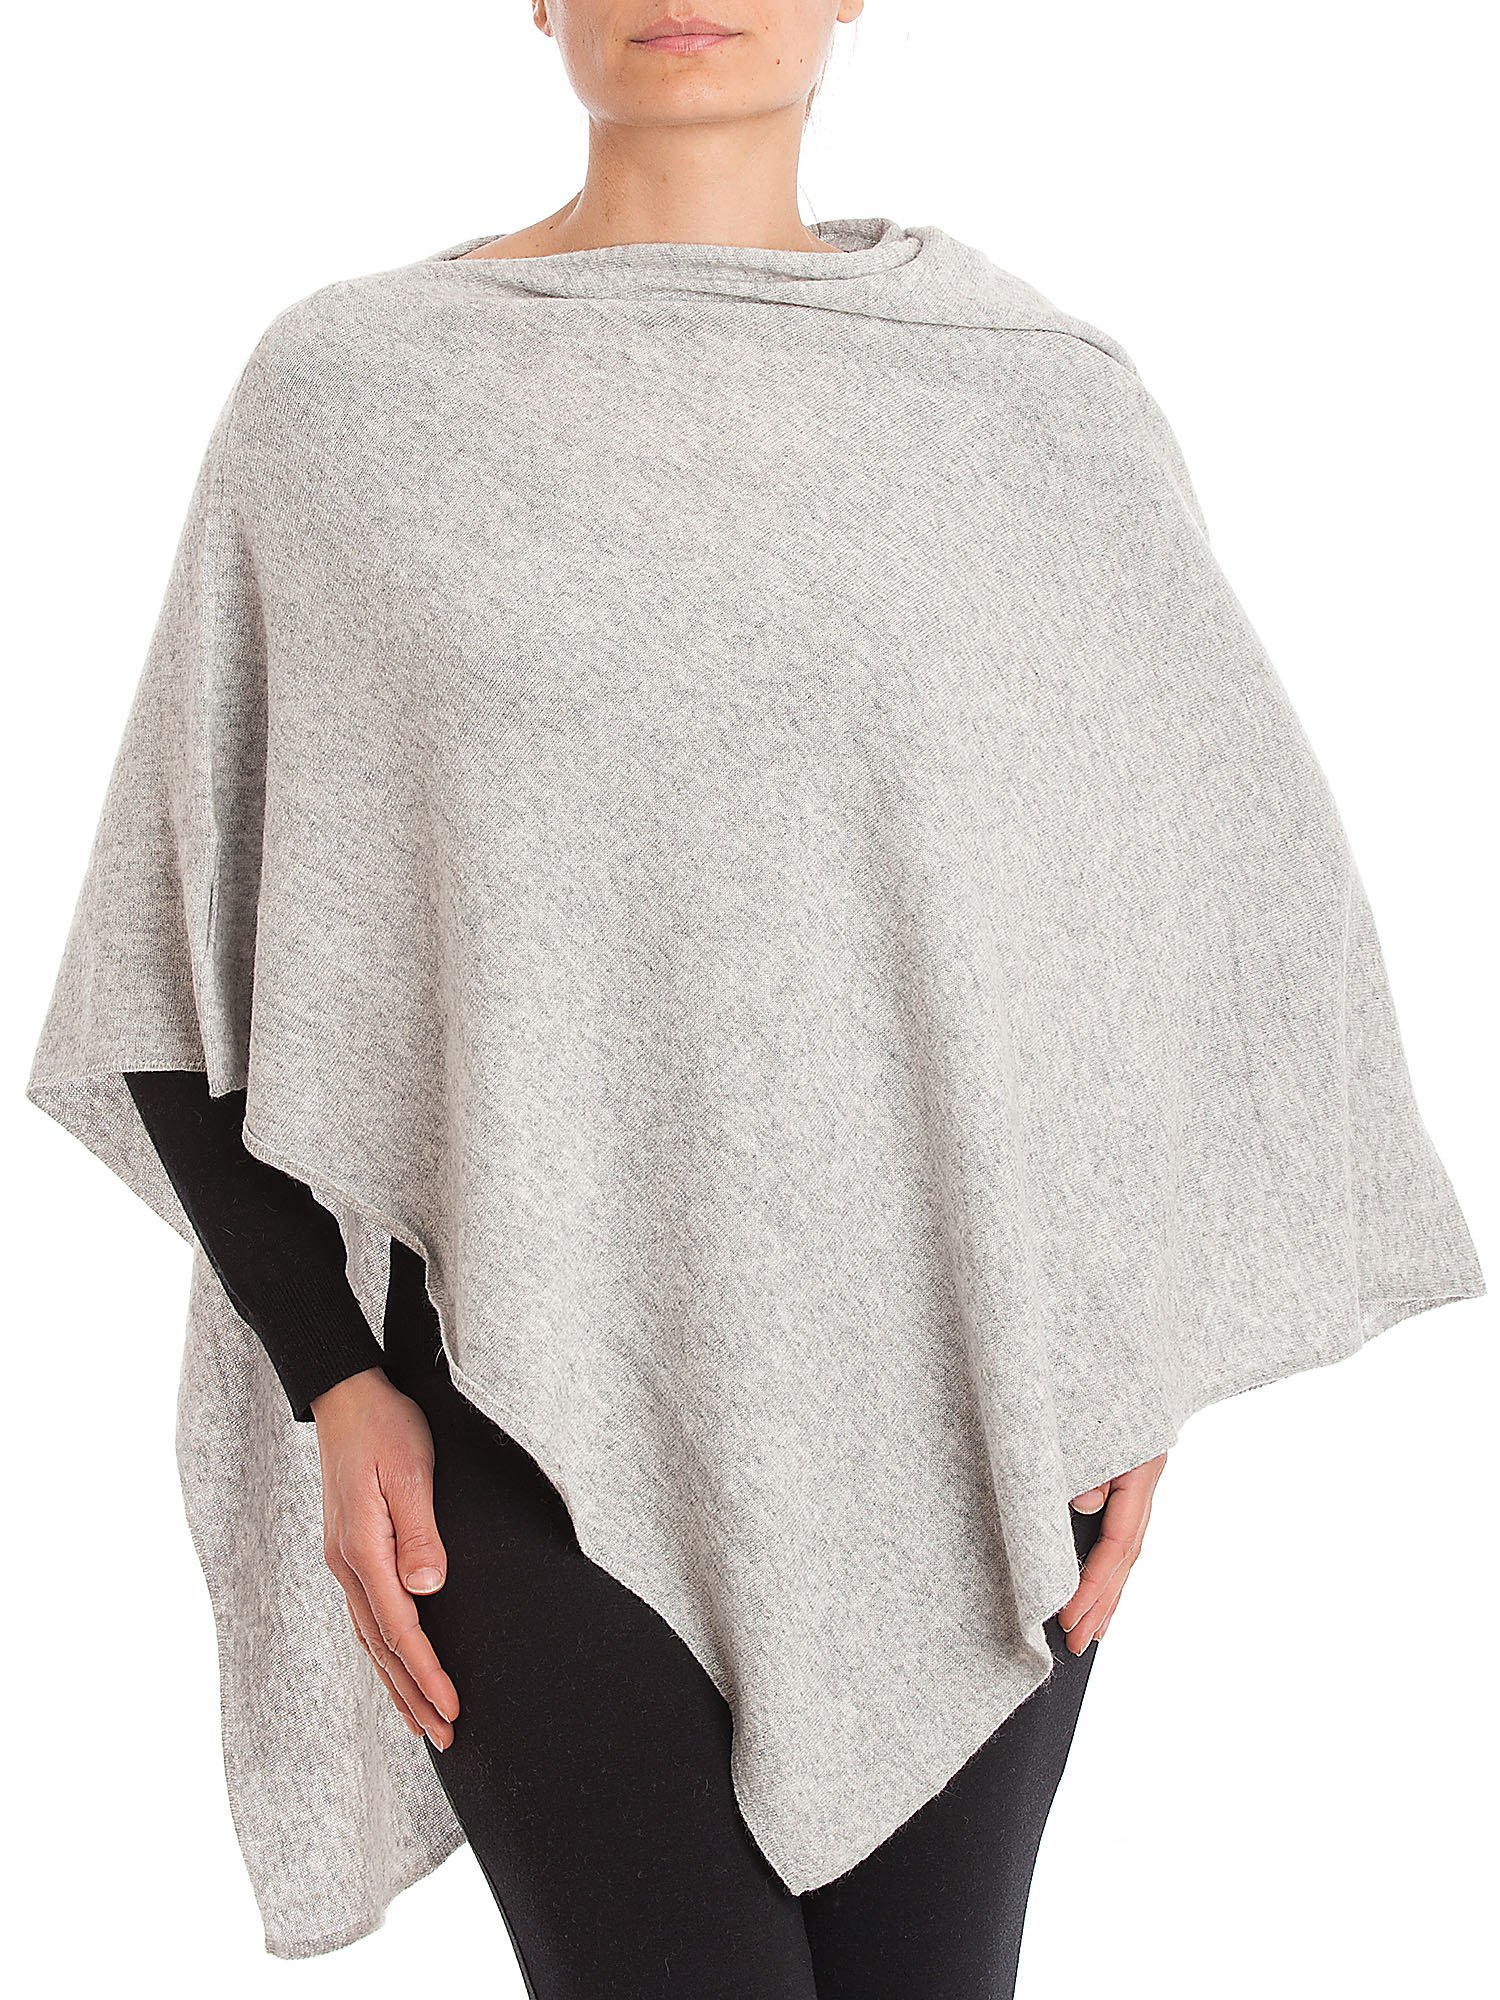 DALLE PIANE CASHMERE - Poncho Cashmere Blend - Made in Italy, Color: Grey, One Size by DALLE PIANE CASHMERE